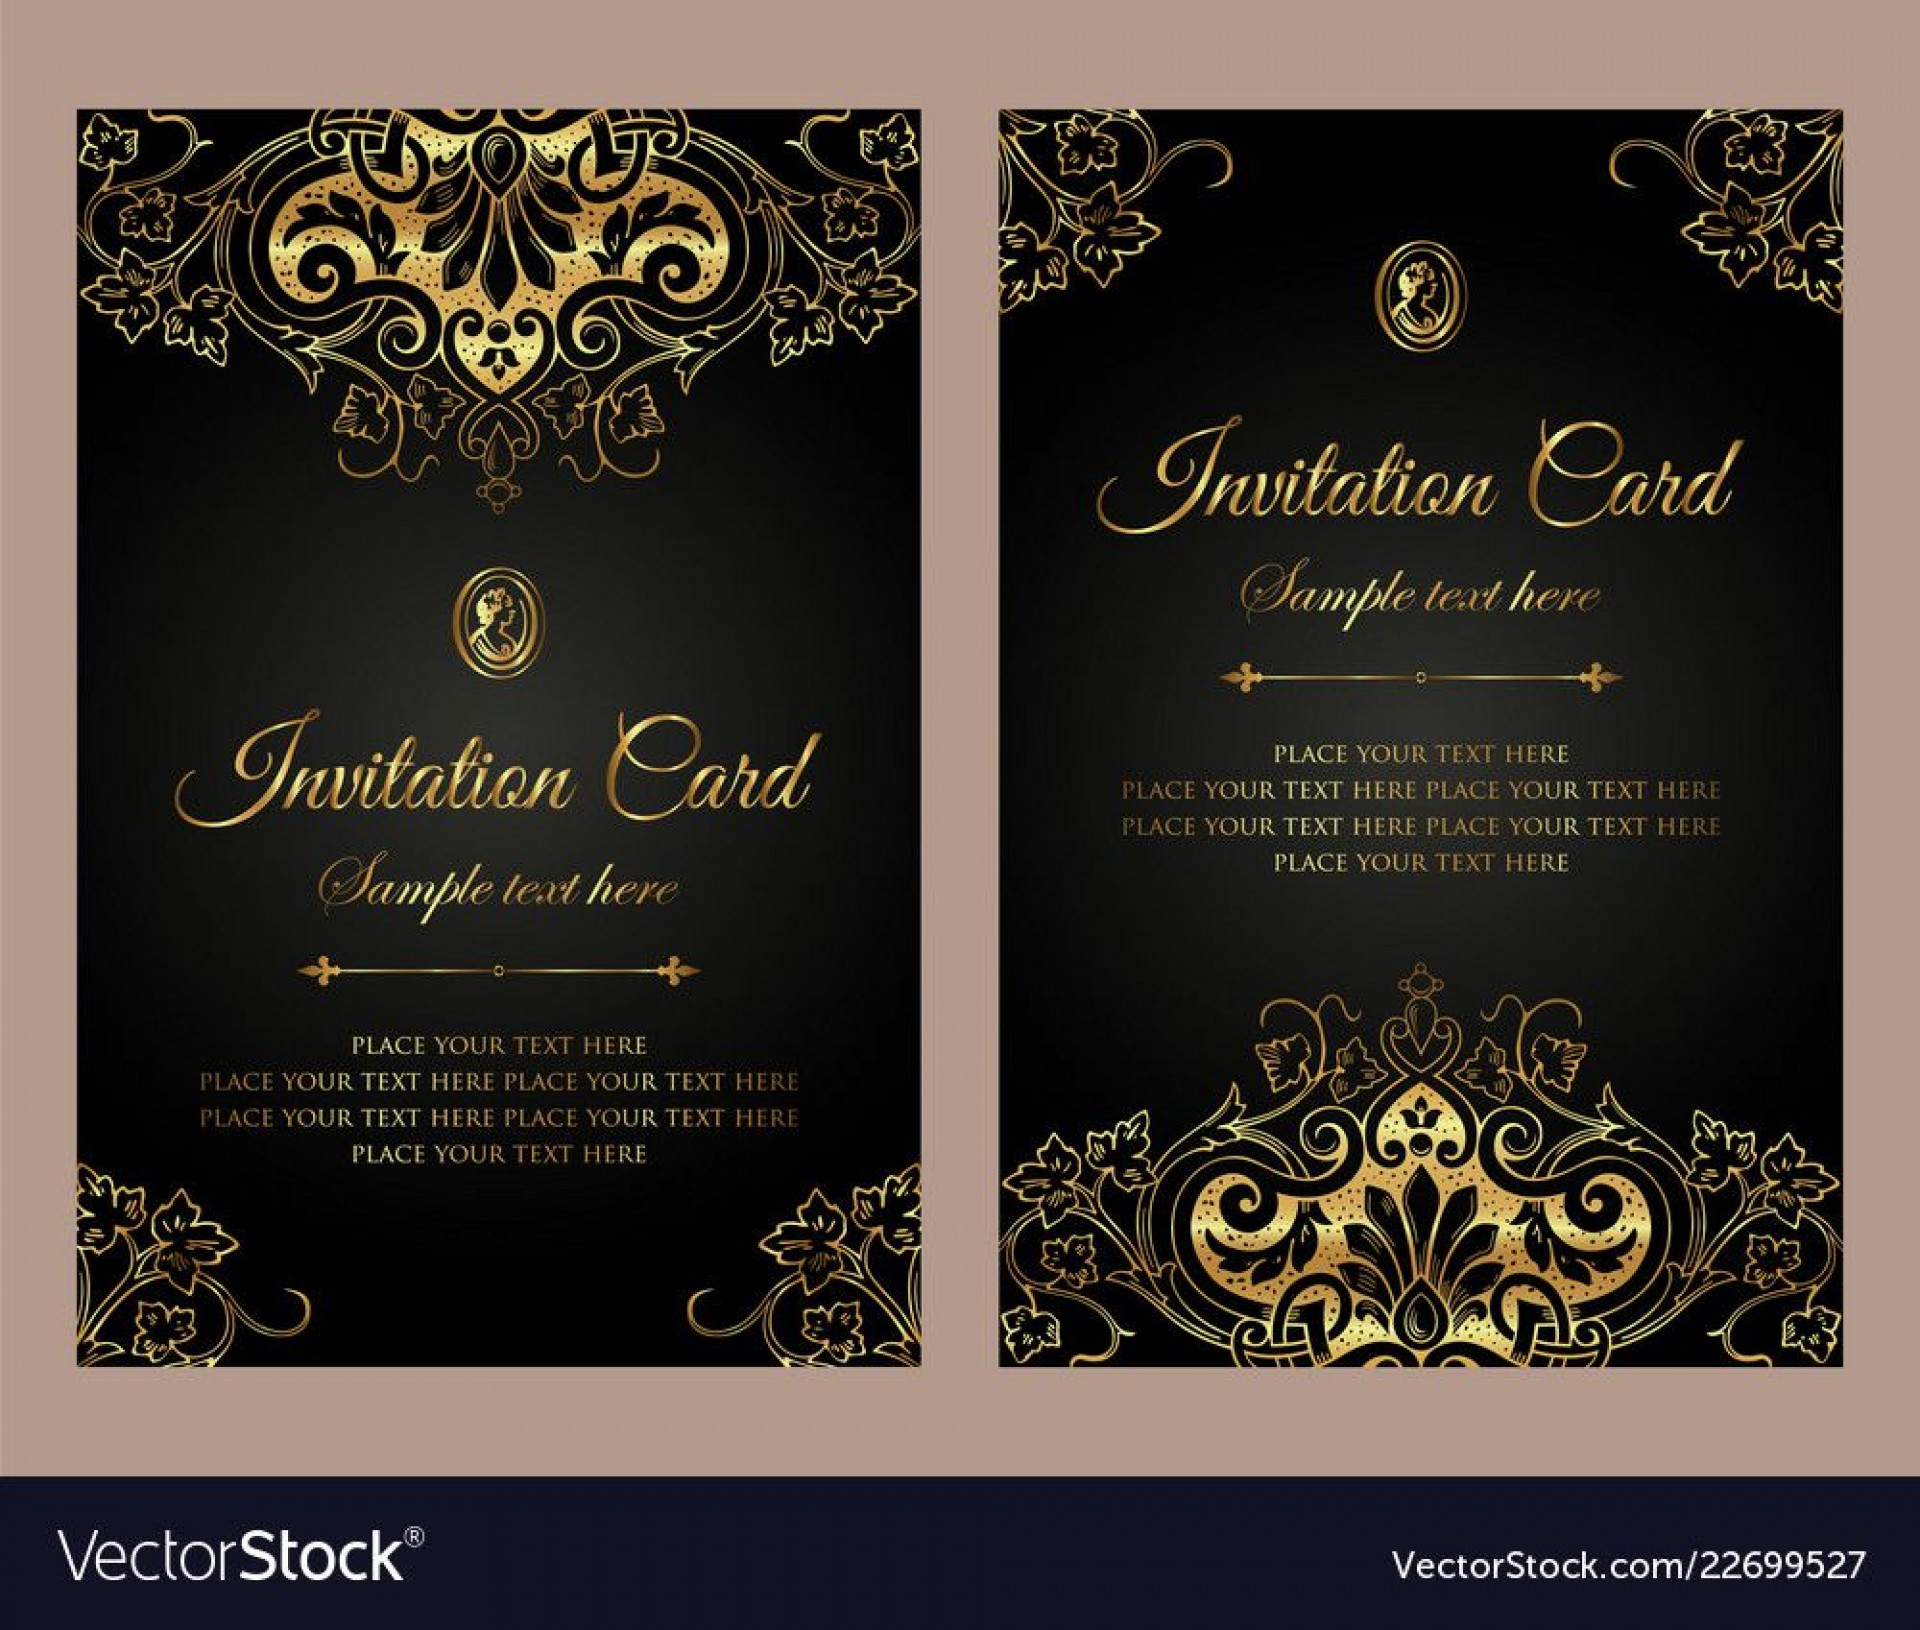 006 Frightening Free Download Formal Invitation Card Template Photo  Sample1920